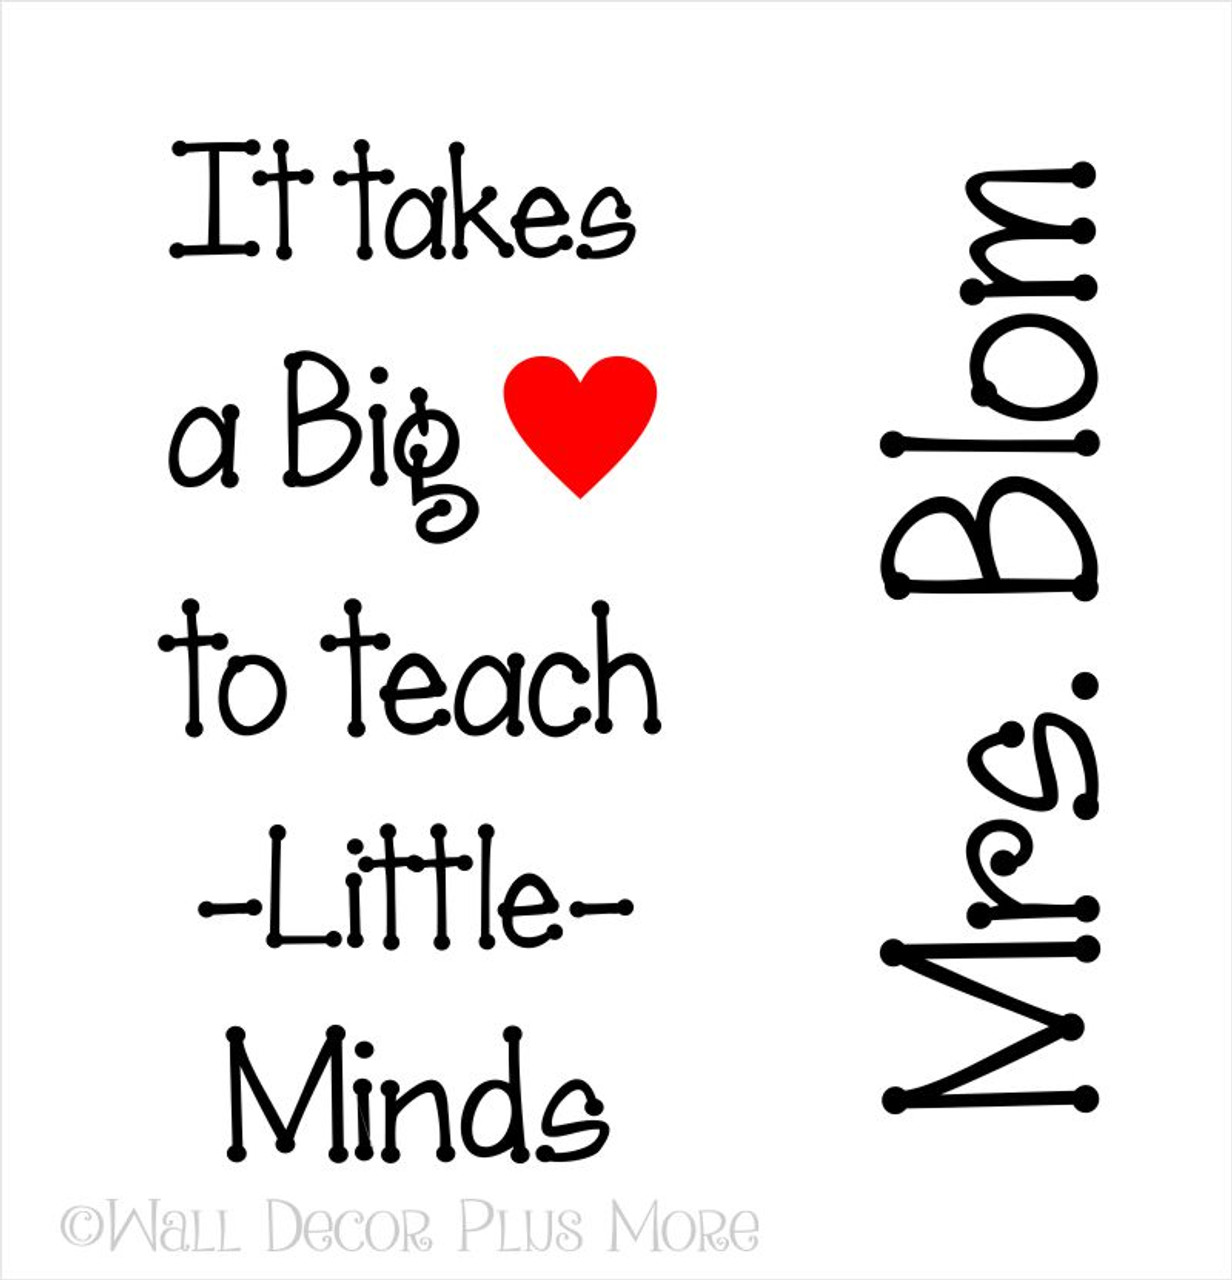 Glossy Vinyl Decal Stickers For Teacher Customized With